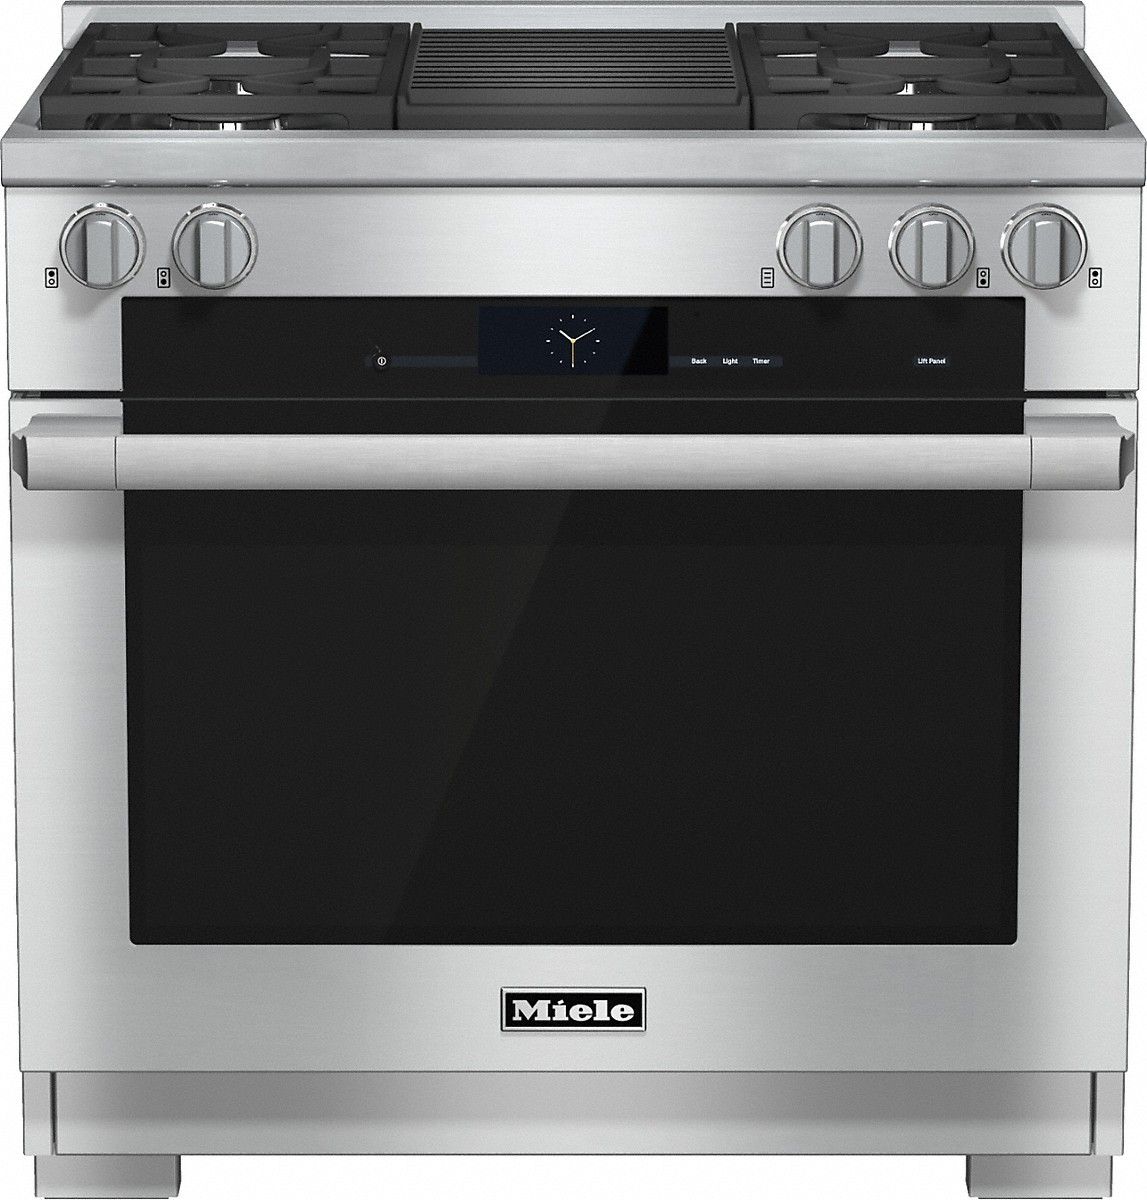 "Miele HR1935 DF GR 36"" Duel Fuel Range with Built-In Barbecue  - Natural Gas"